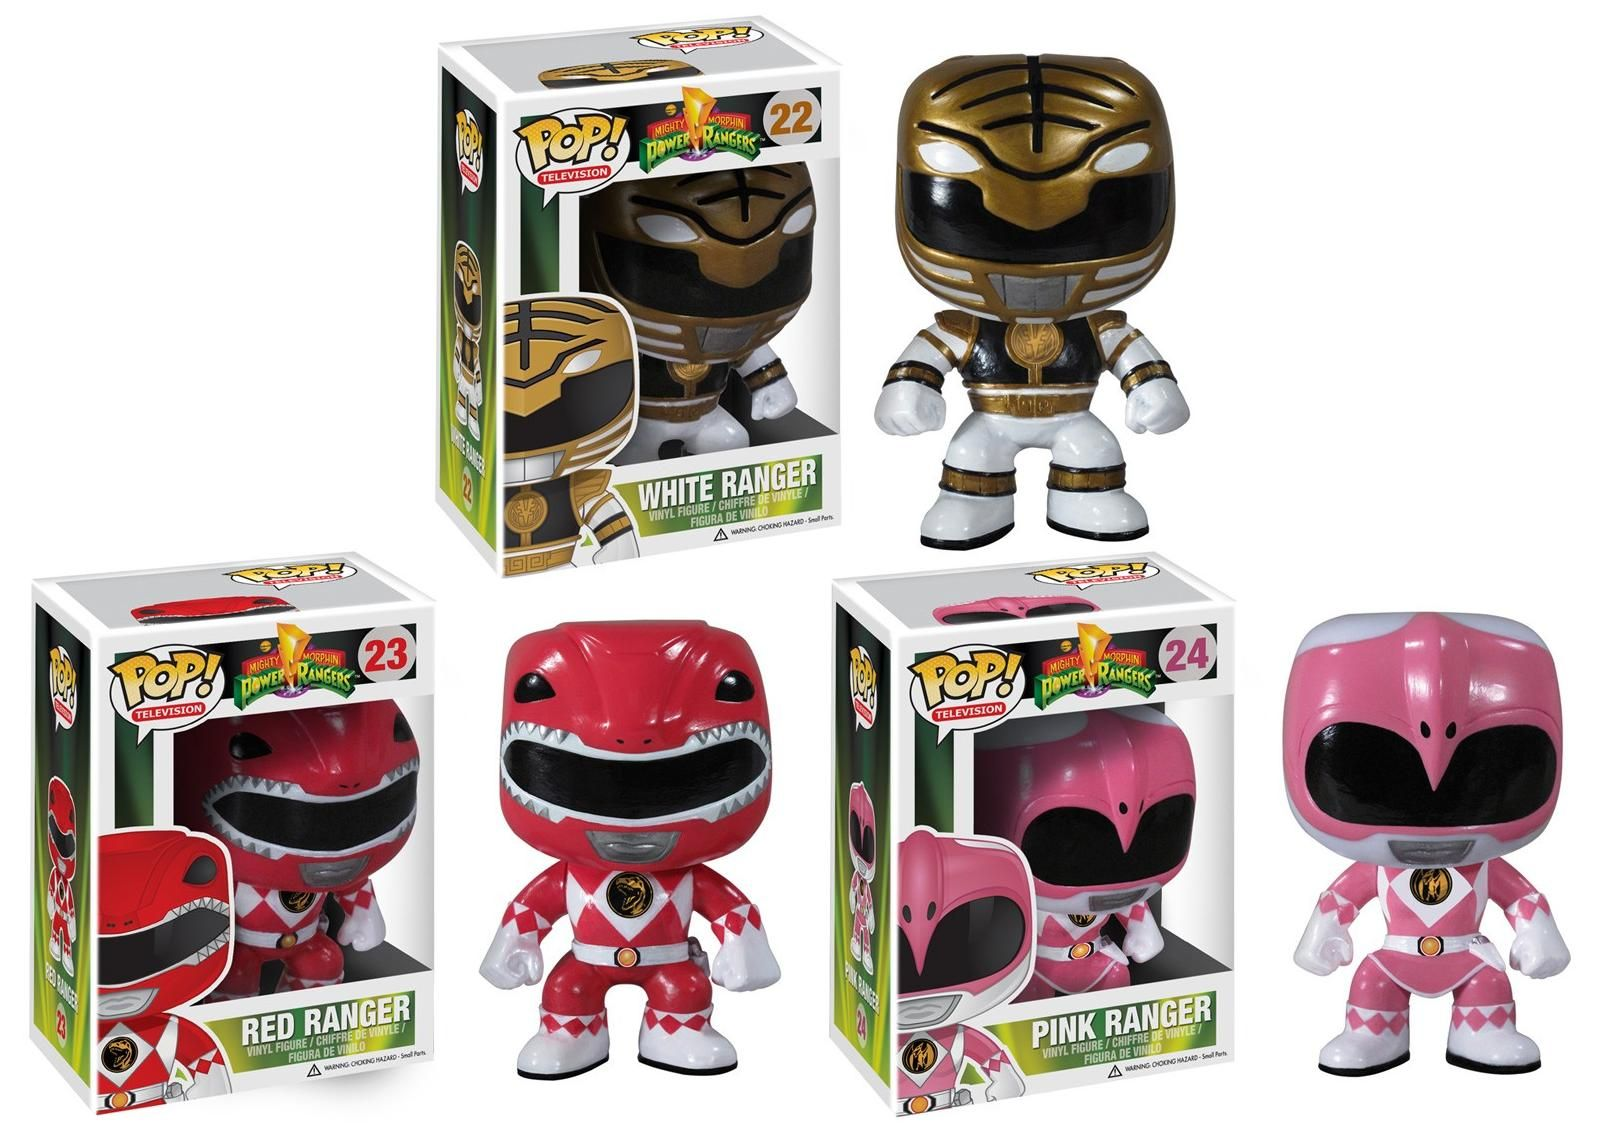 Po po power ranger pages to color - Mighty Morphin Power Rangers Pop Television Series 1 By Funko White Ranger Red